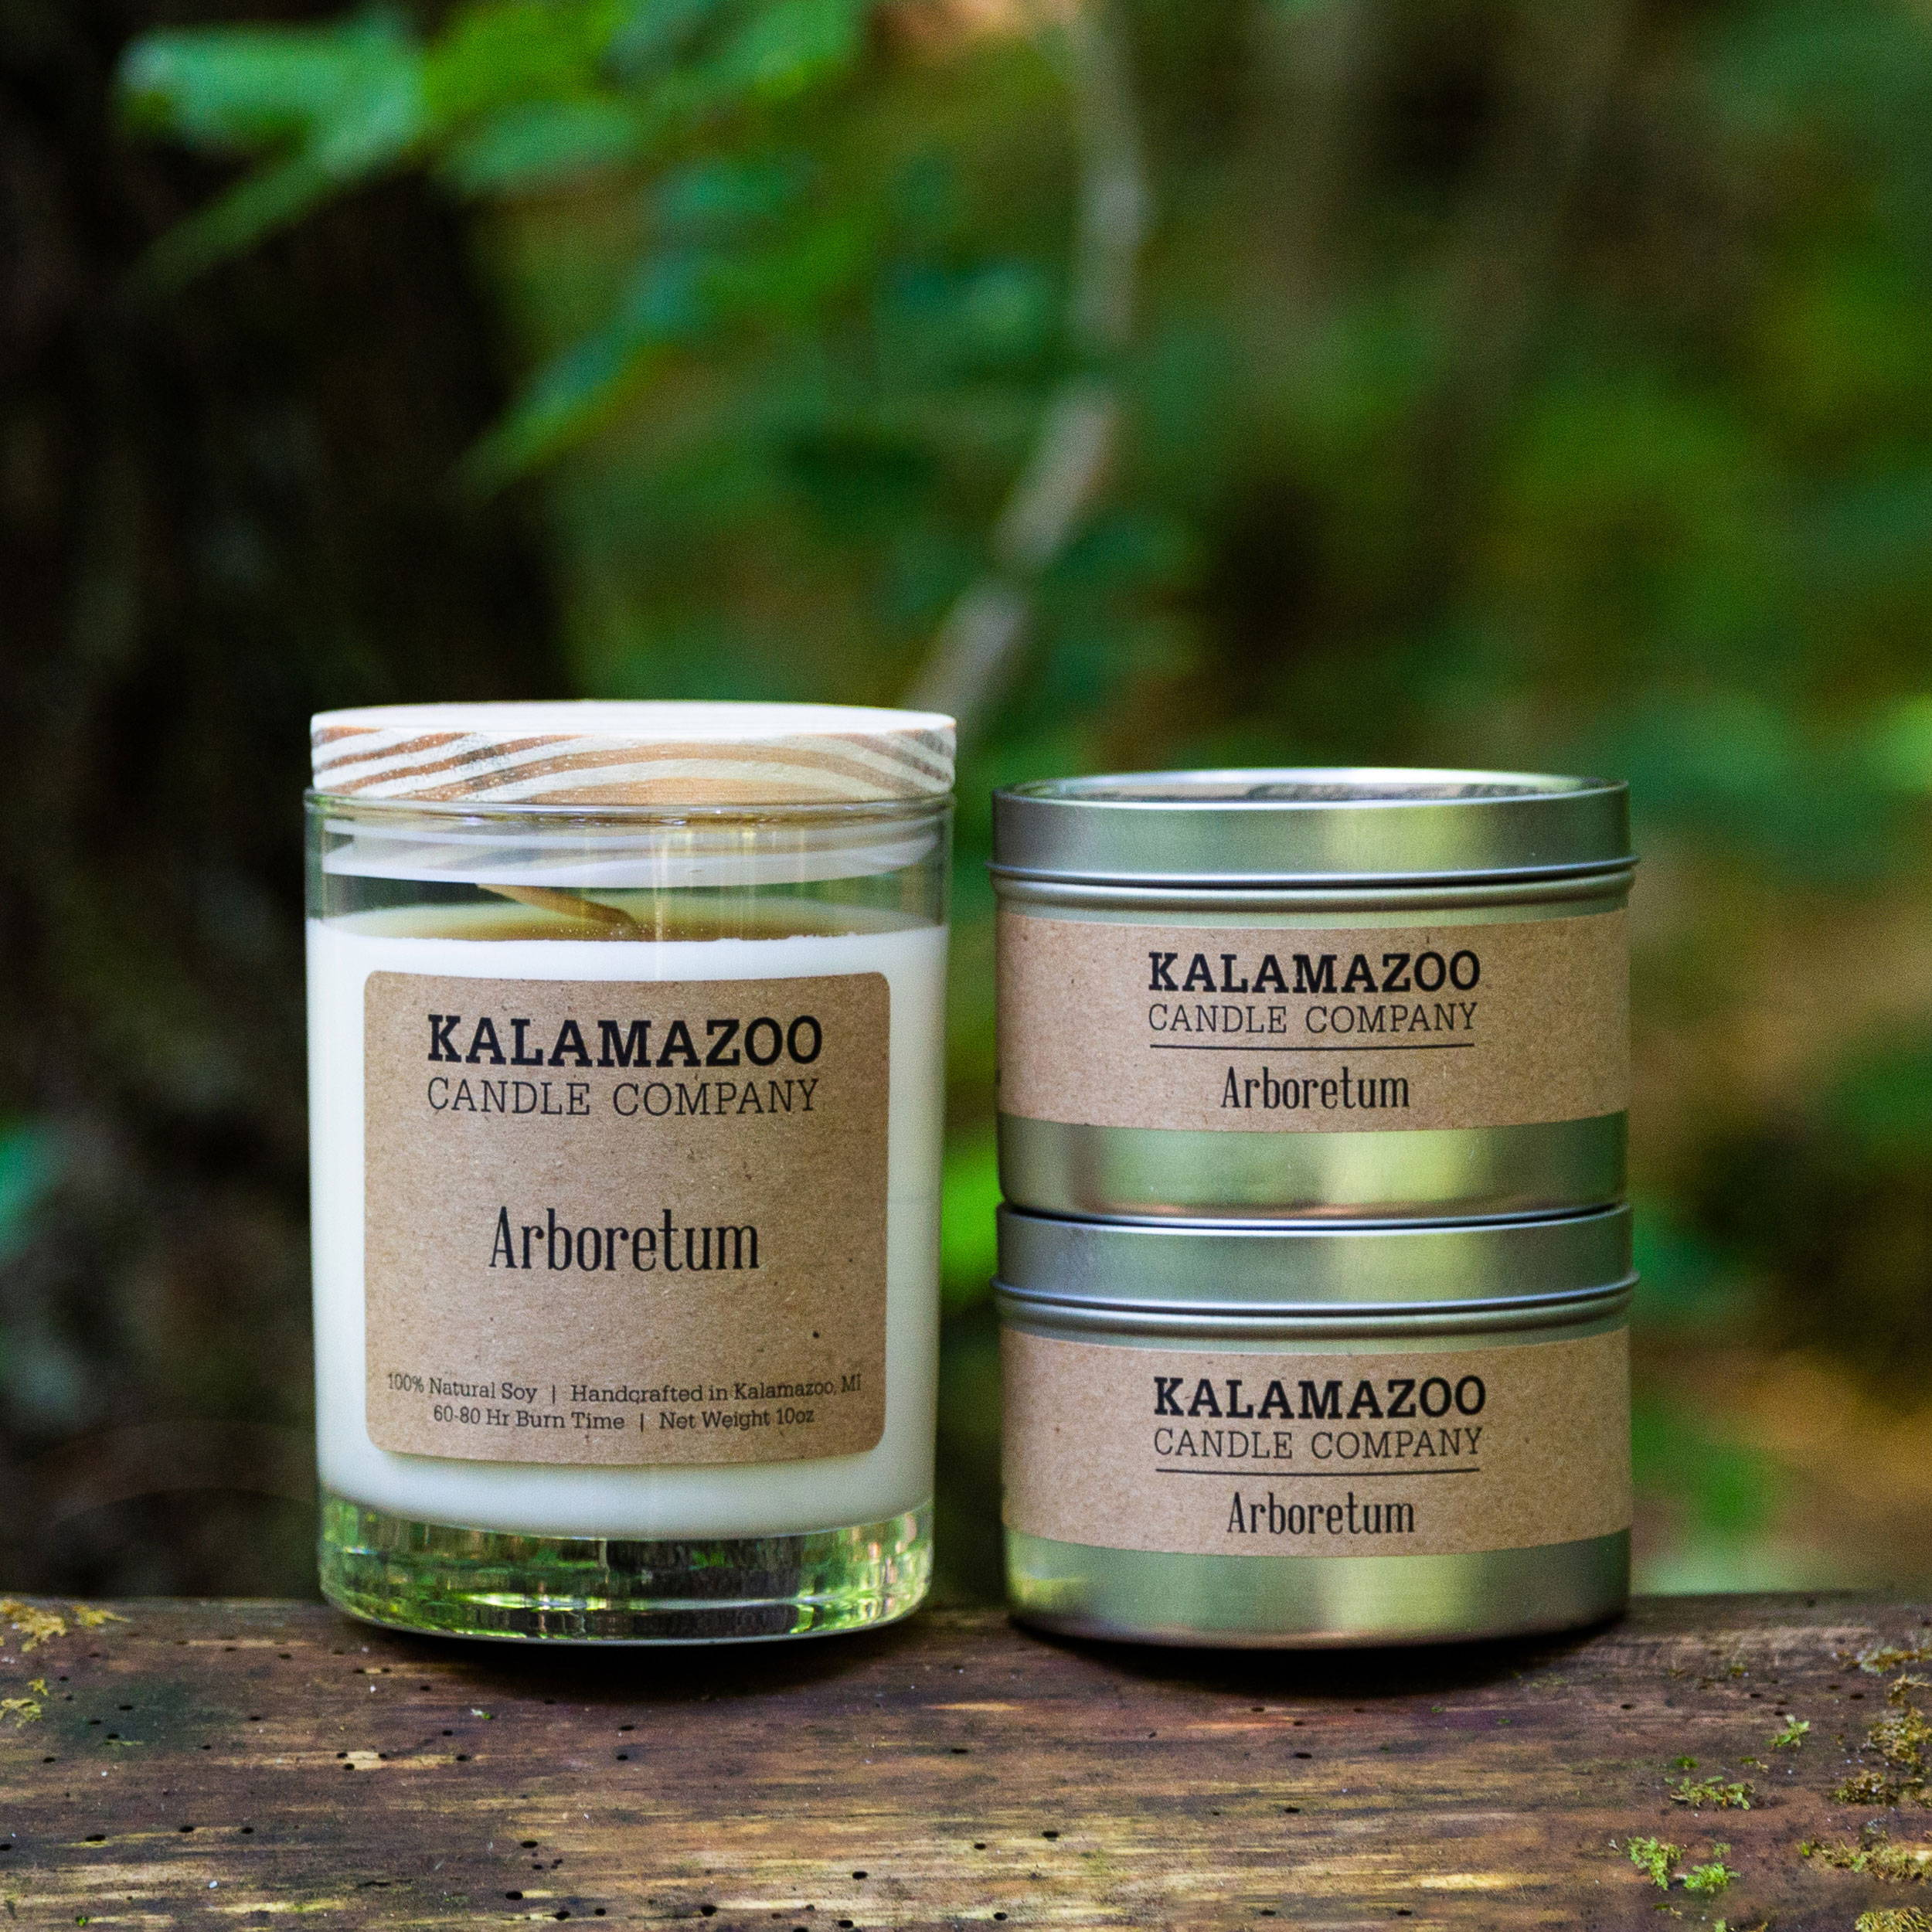 Arboreteum natural soy wax scented candle